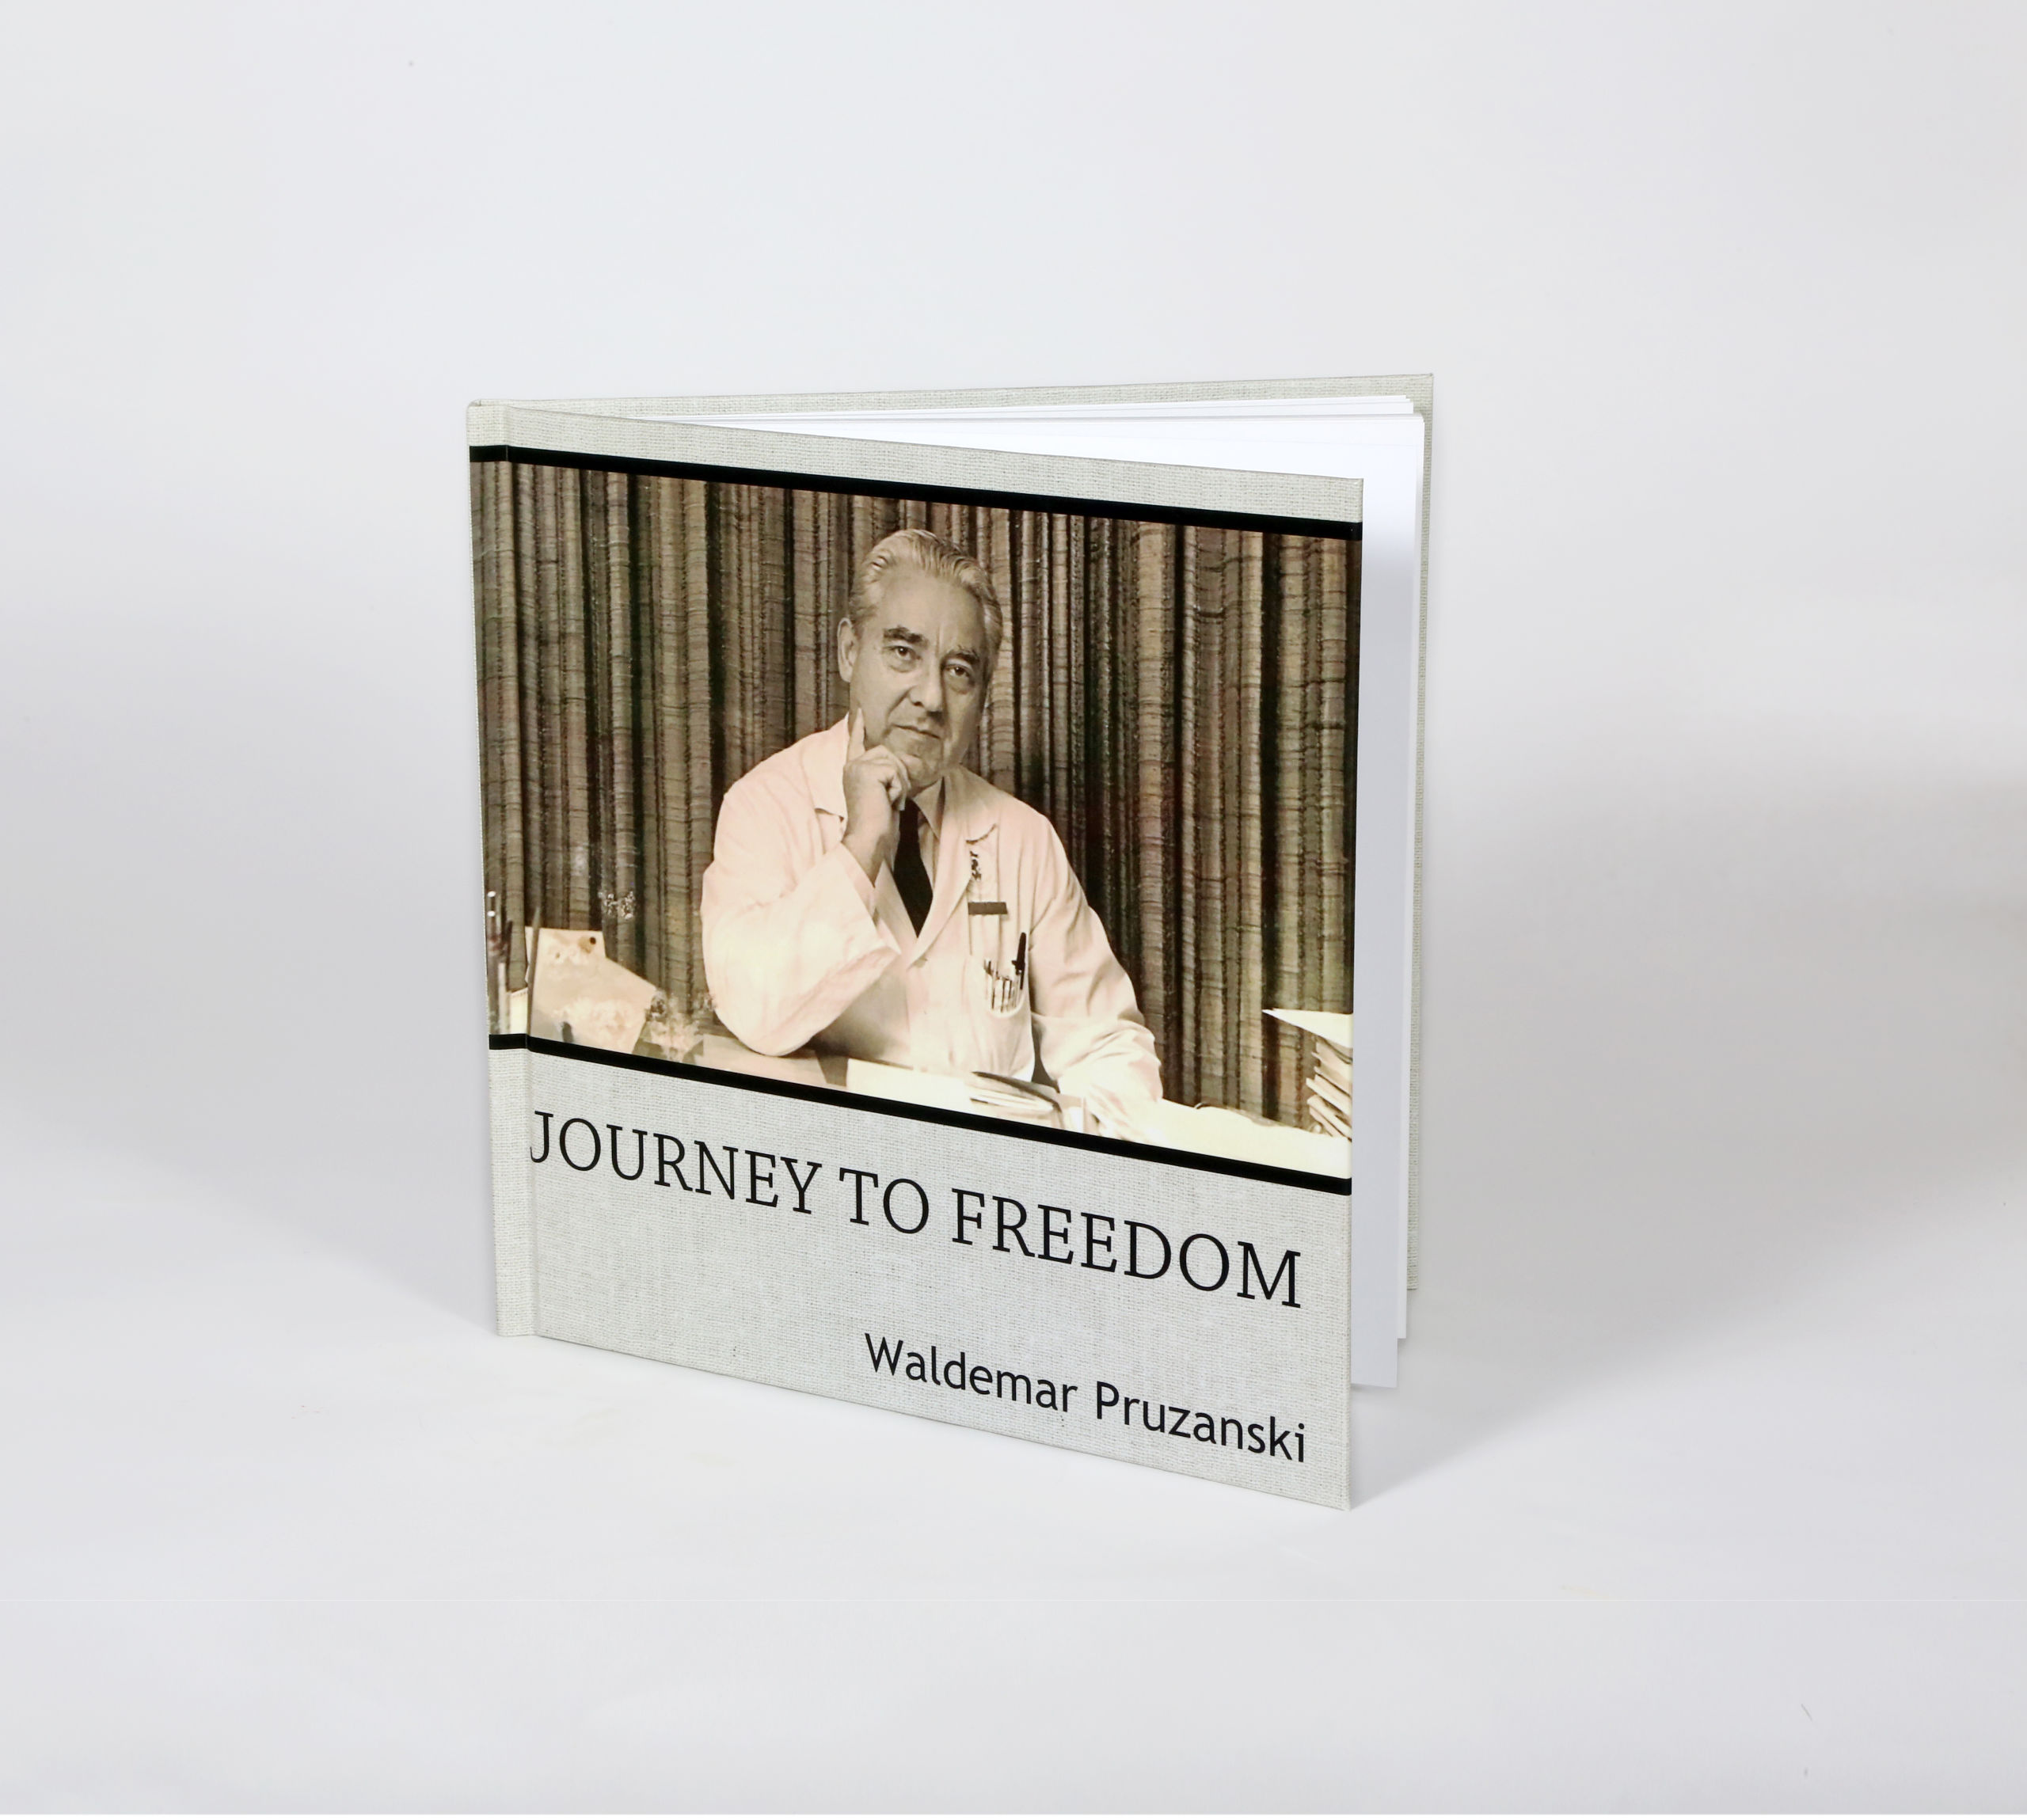 Coffee table legacy book entitled Journey to Freedom